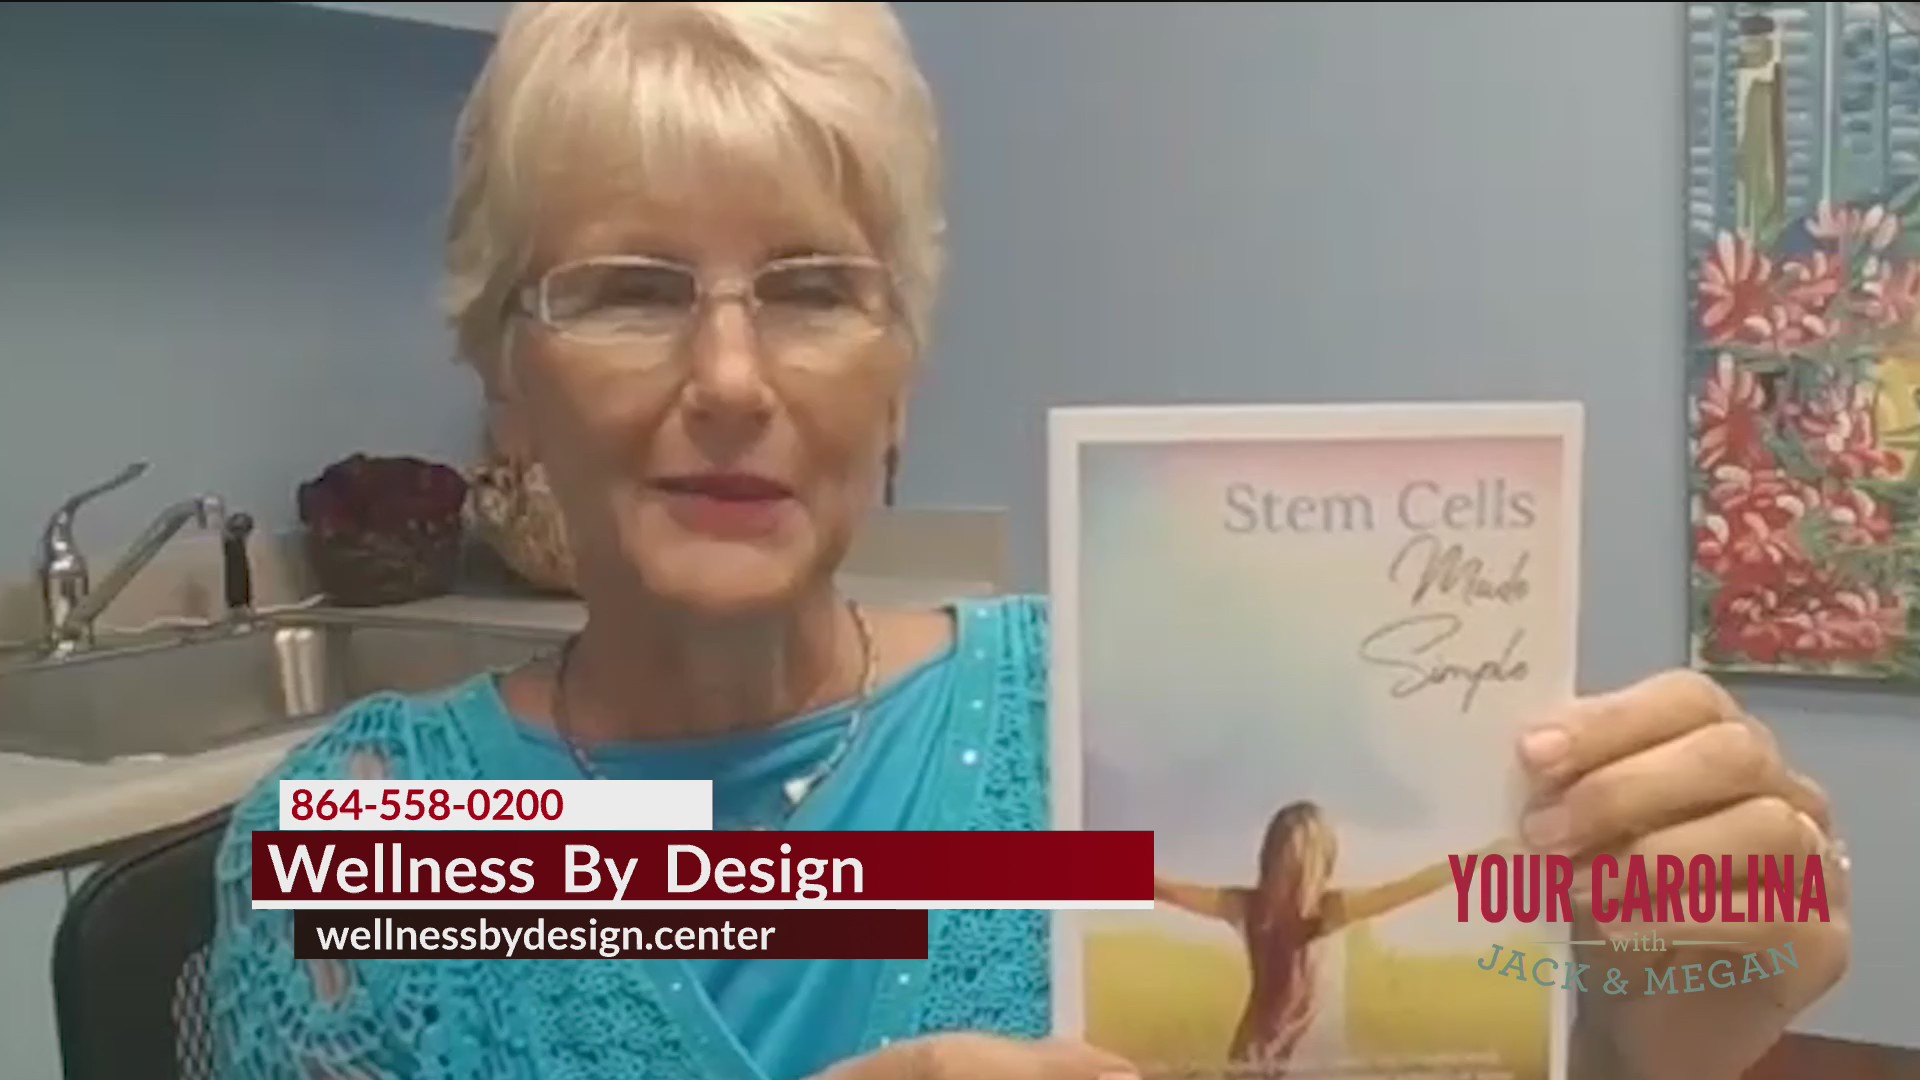 Wellness By Design - Help With Joint Pain Using Stem Cells